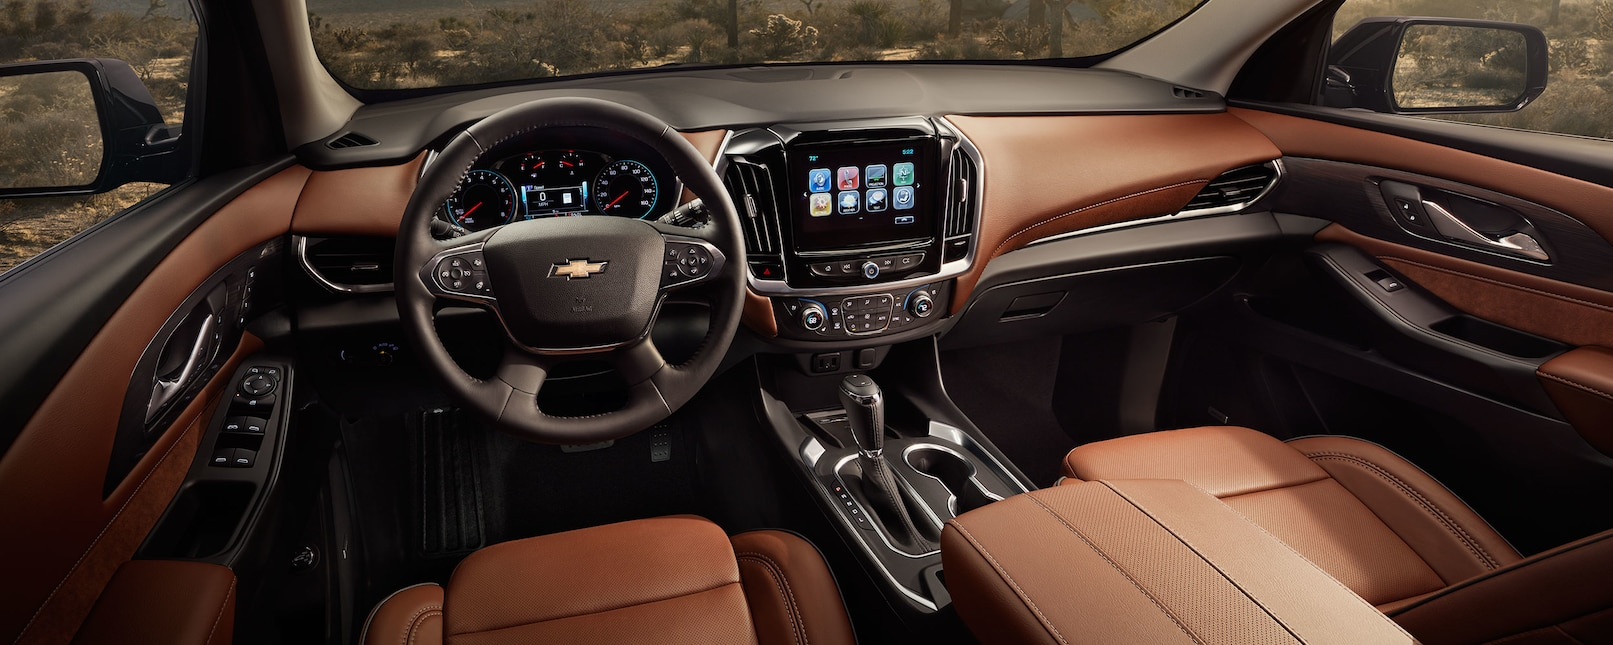 2019 Chevrolet Traverse Center Console